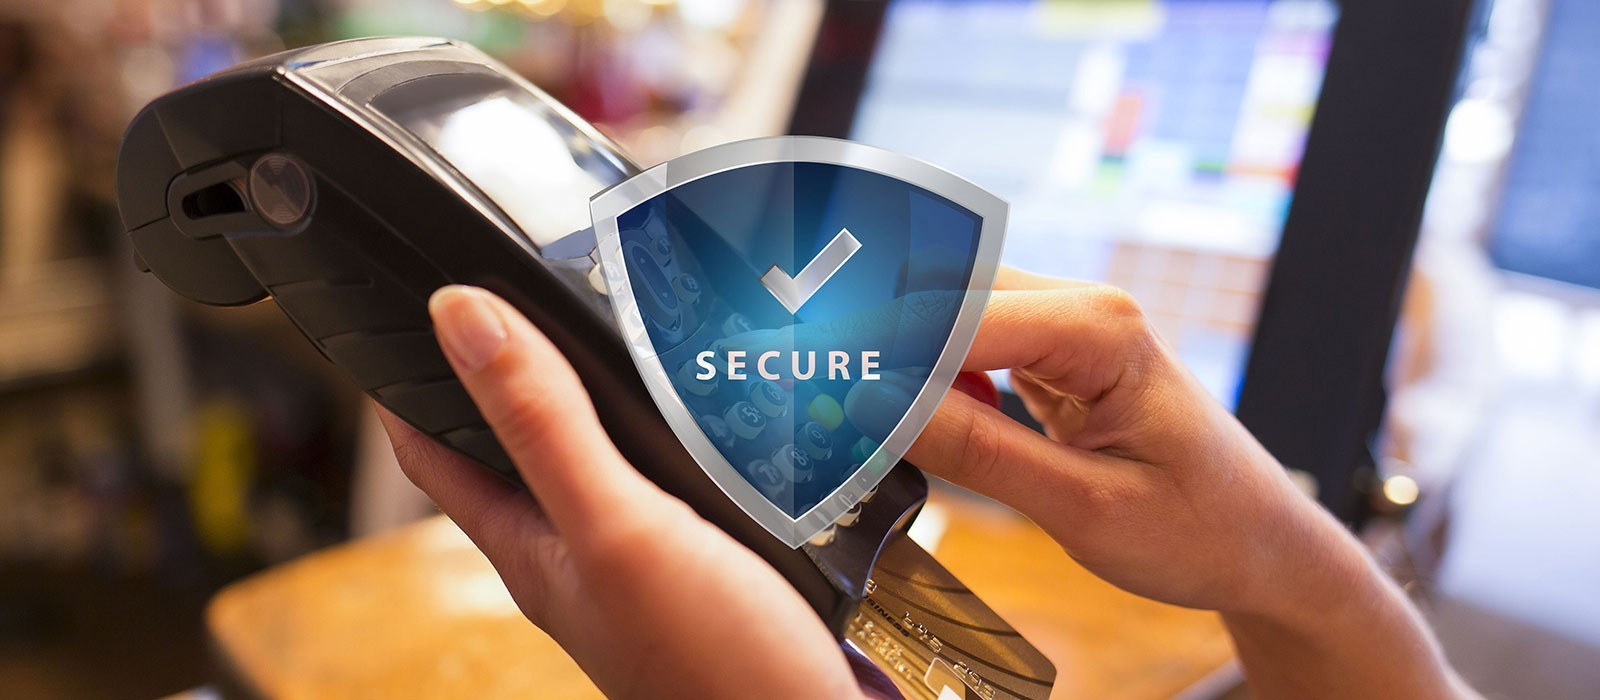 Secured Payment System Integration